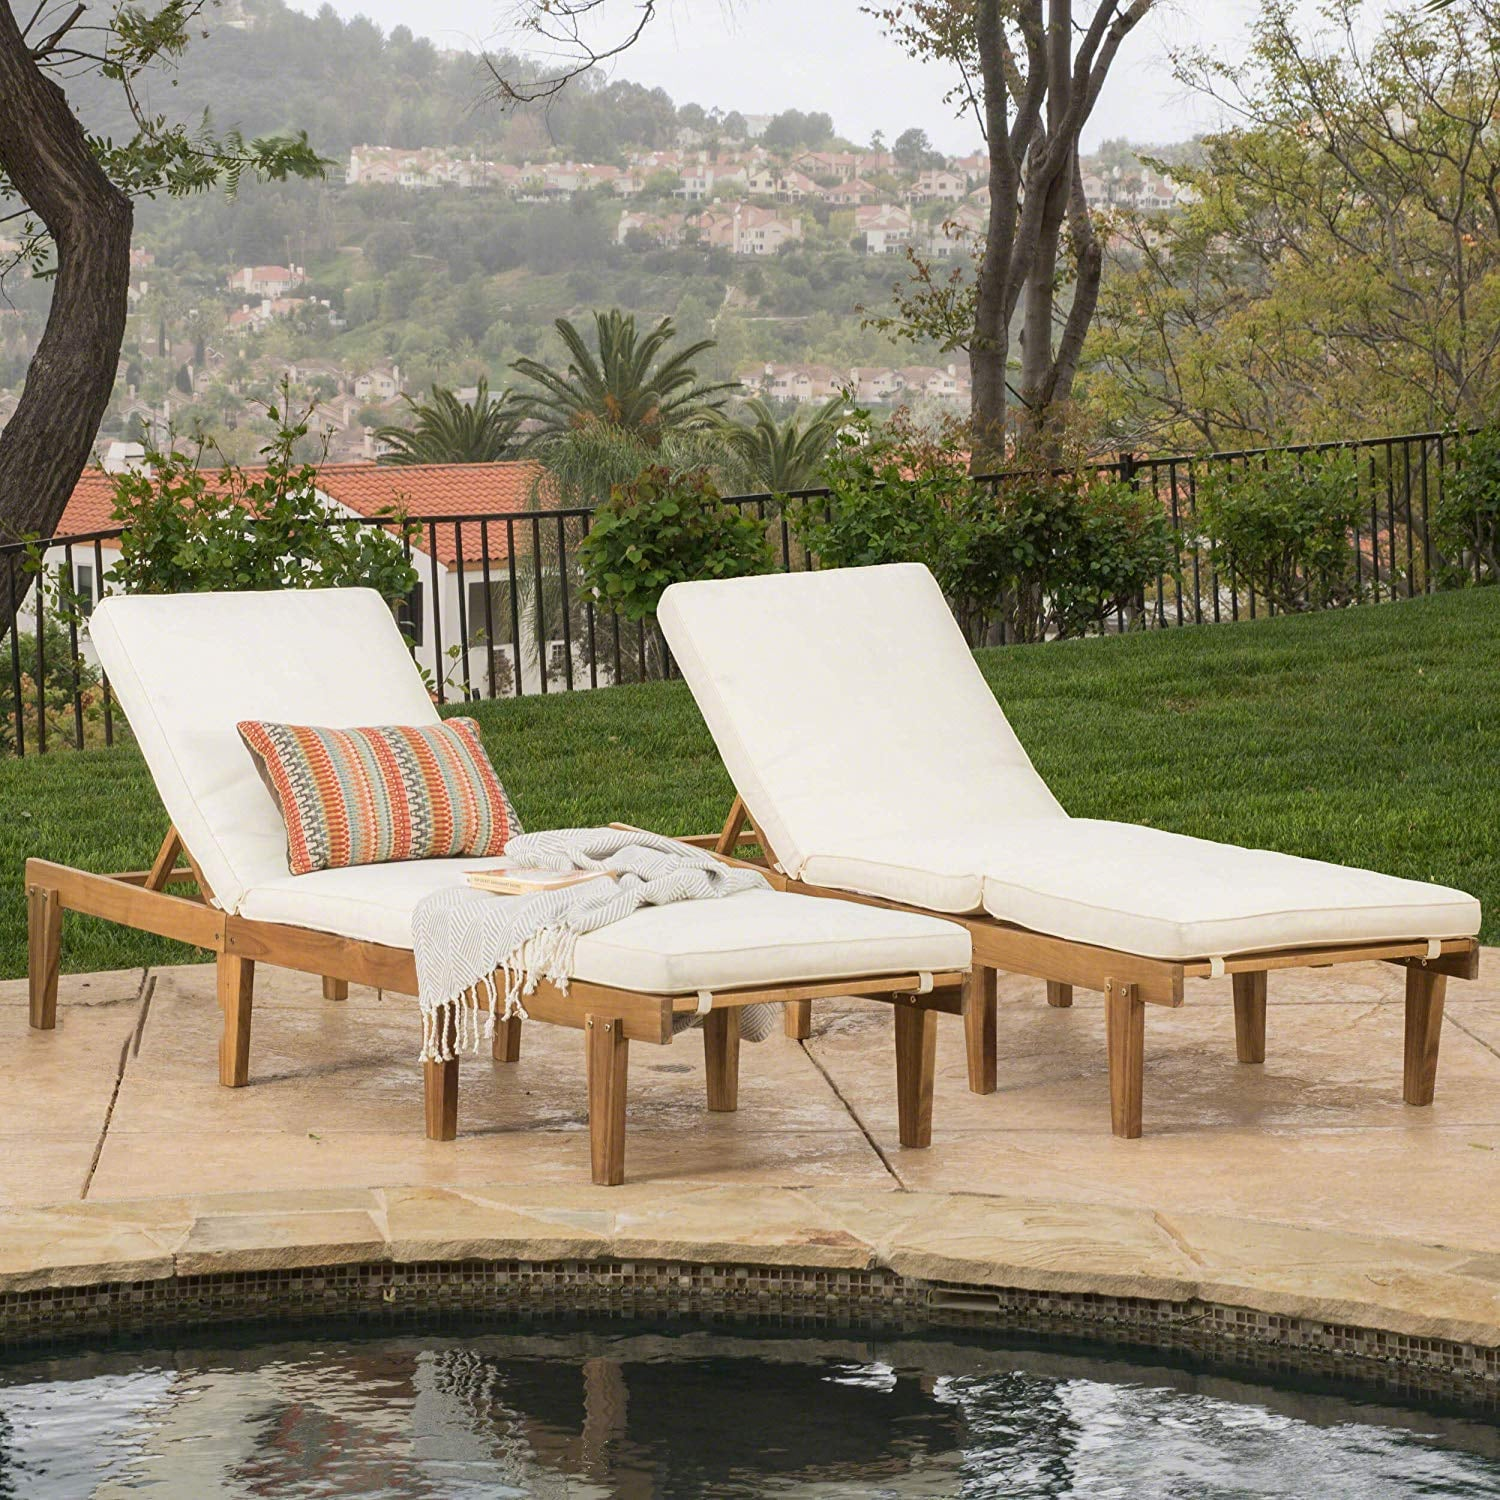 Picture of: Teak Chaise Lounge Chairs With Cushions Best Outdoor Furniture From Amazon Popsugar Home Uk Photo 10